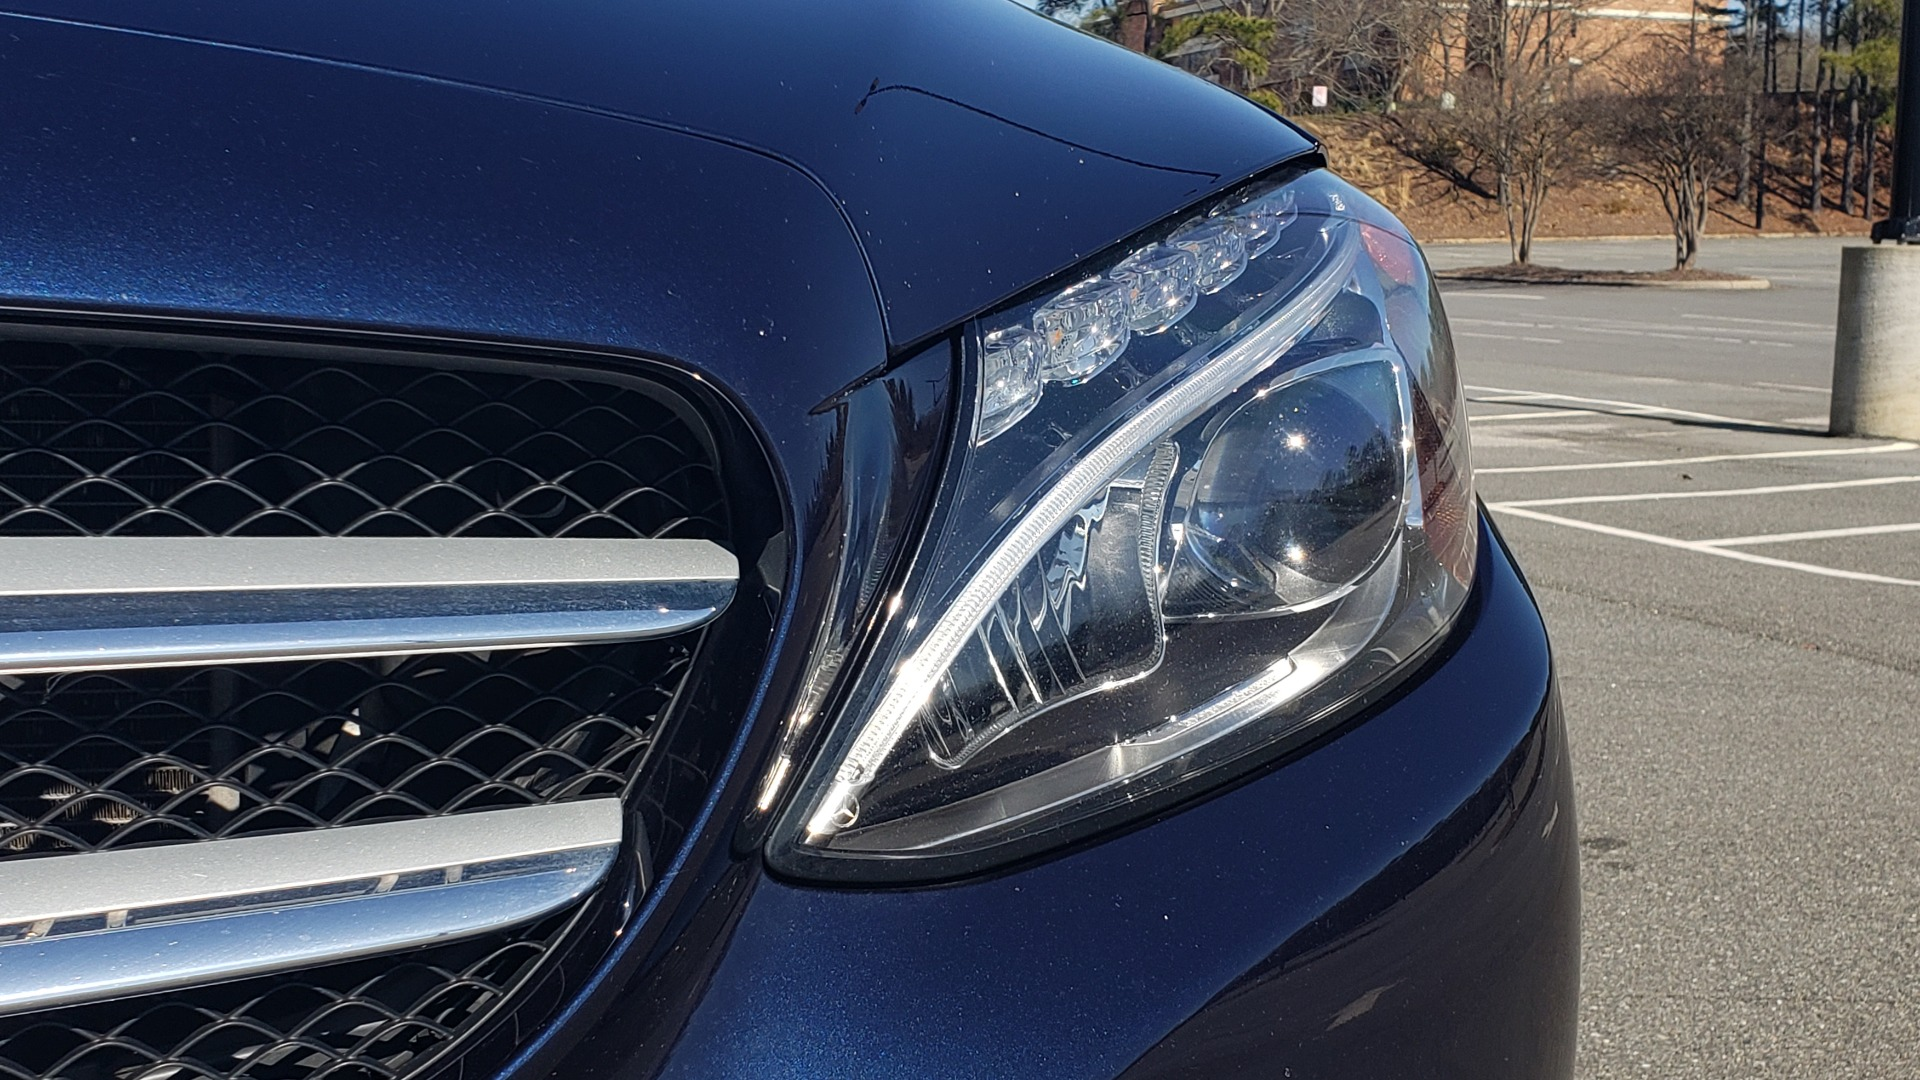 Used 2018 Mercedes-Benz C-CLASS C 300 PREMIUM / SUNROOF / BURMESTER / BSM / REARVIEW for sale $23,995 at Formula Imports in Charlotte NC 28227 20